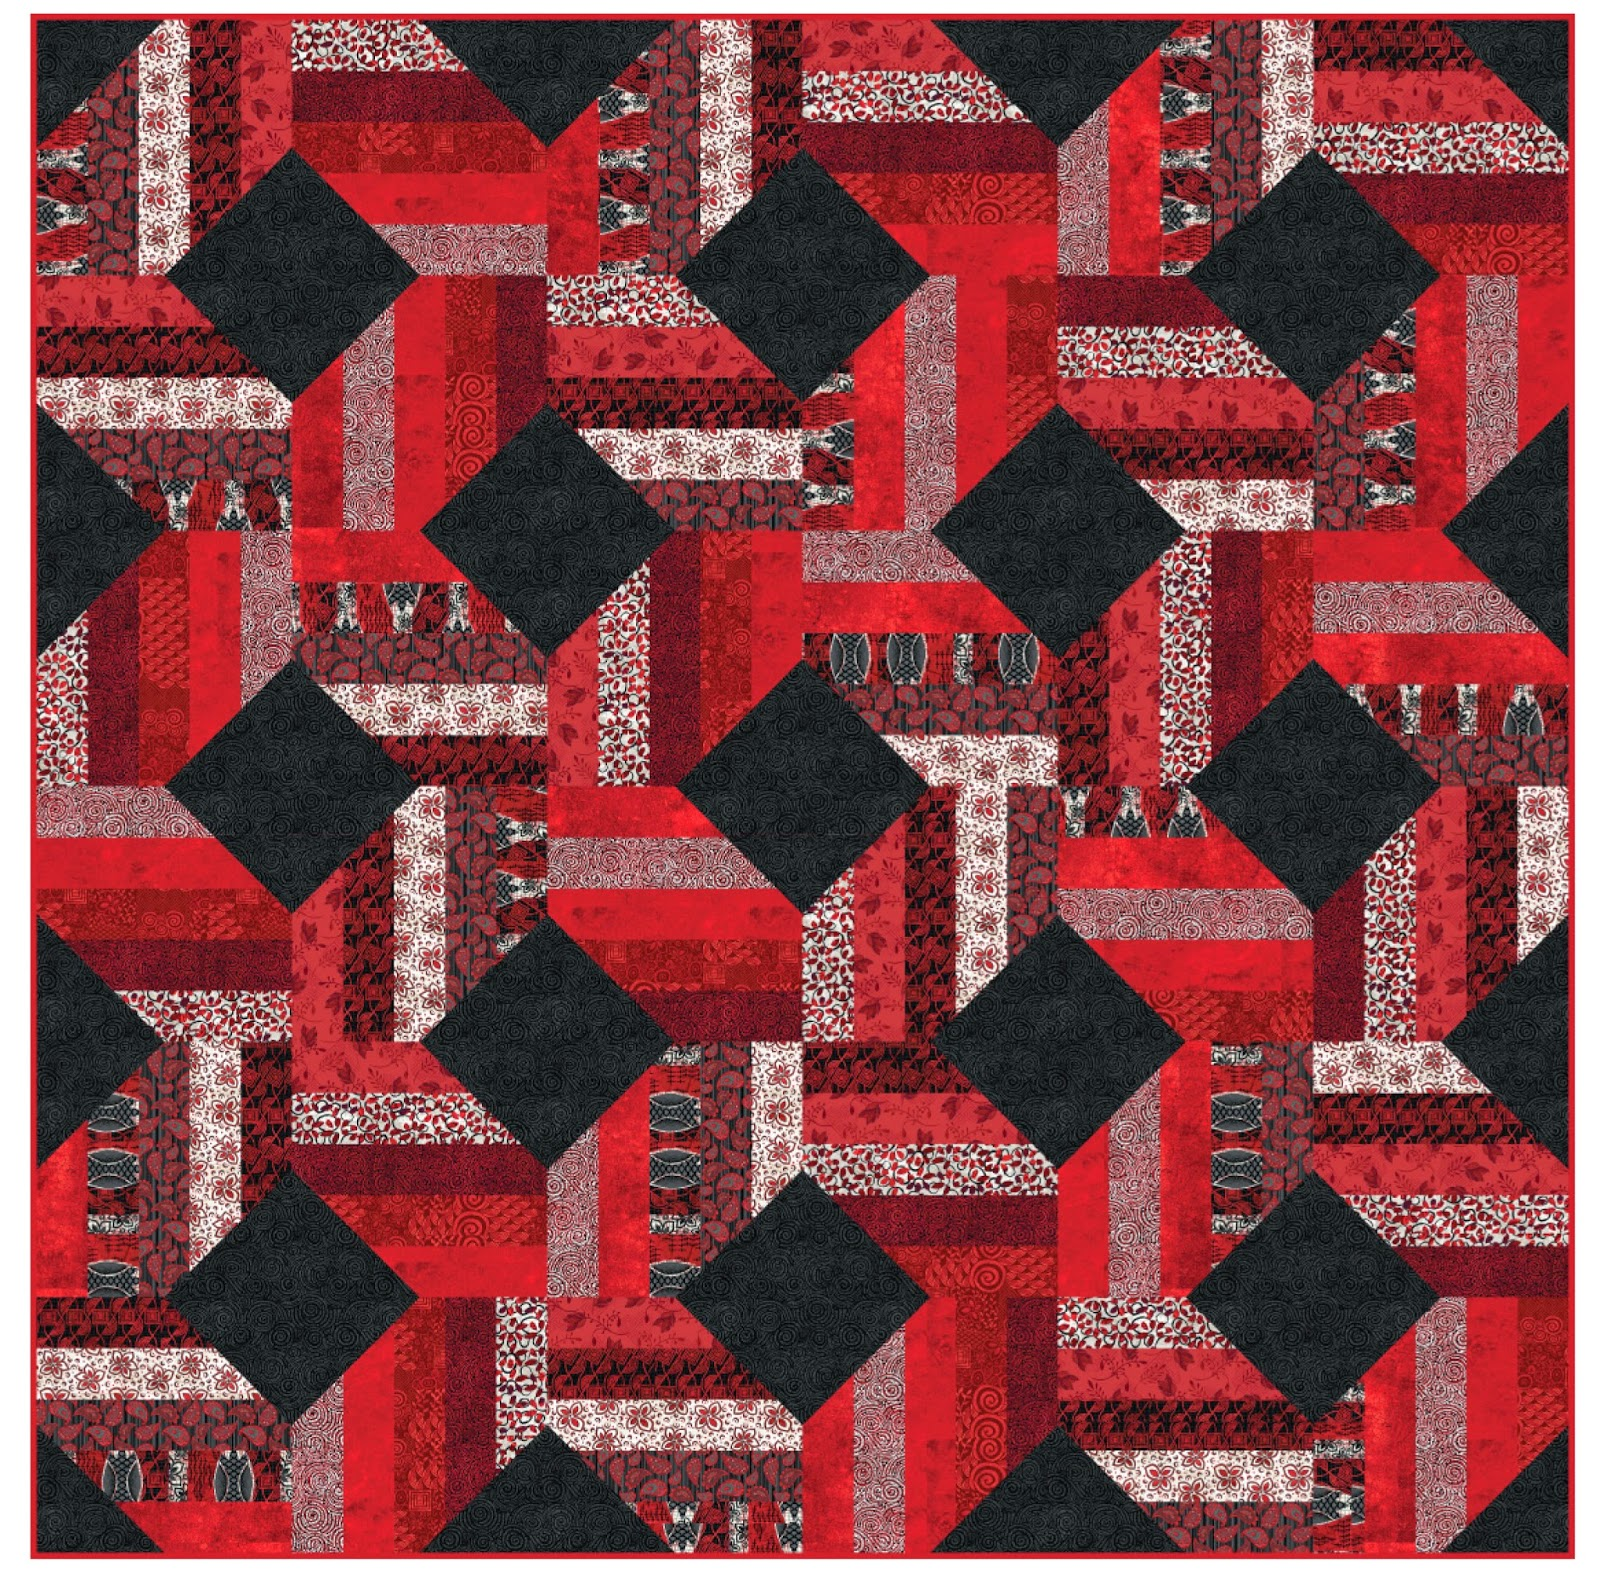 Quilt Patterns 4 Different Fabrics : Inspired by Fabric: Exclusive FREE Quilt Pattern